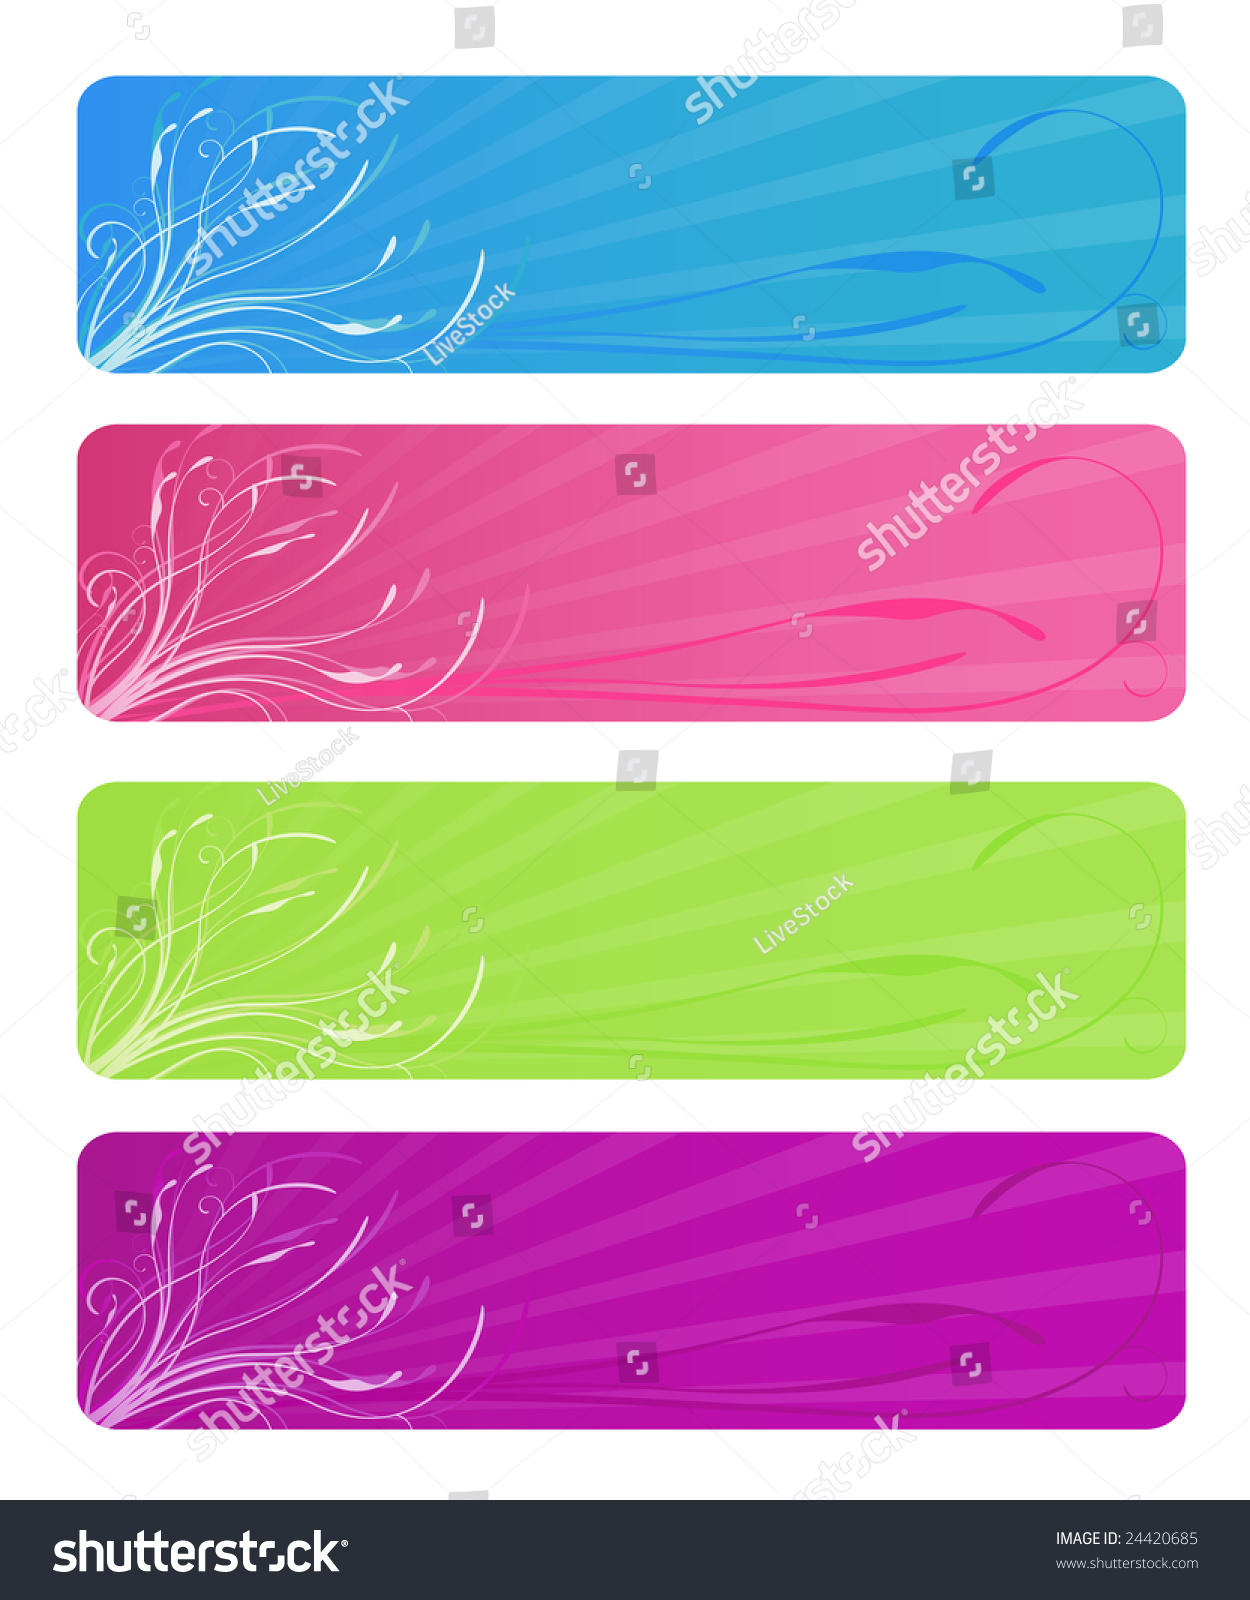 Web colors lime - Image Version Of Four Floral Web Banners In Bright Colors Aqua Hot Pink